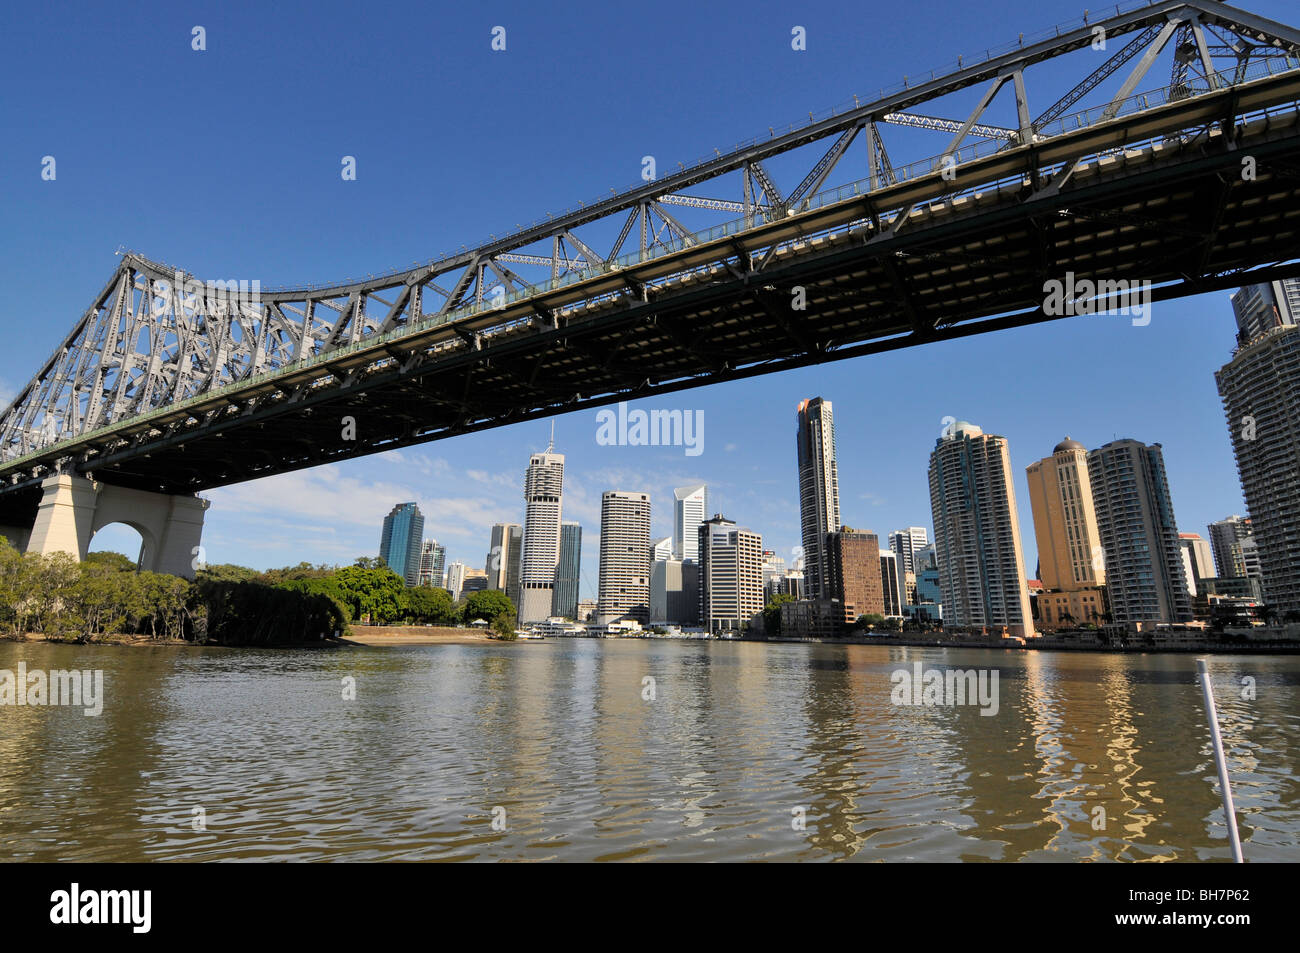 The Story Bridge spans the Brisbane river and skyline of Brisbane, Queensland, Australia. - Stock Image